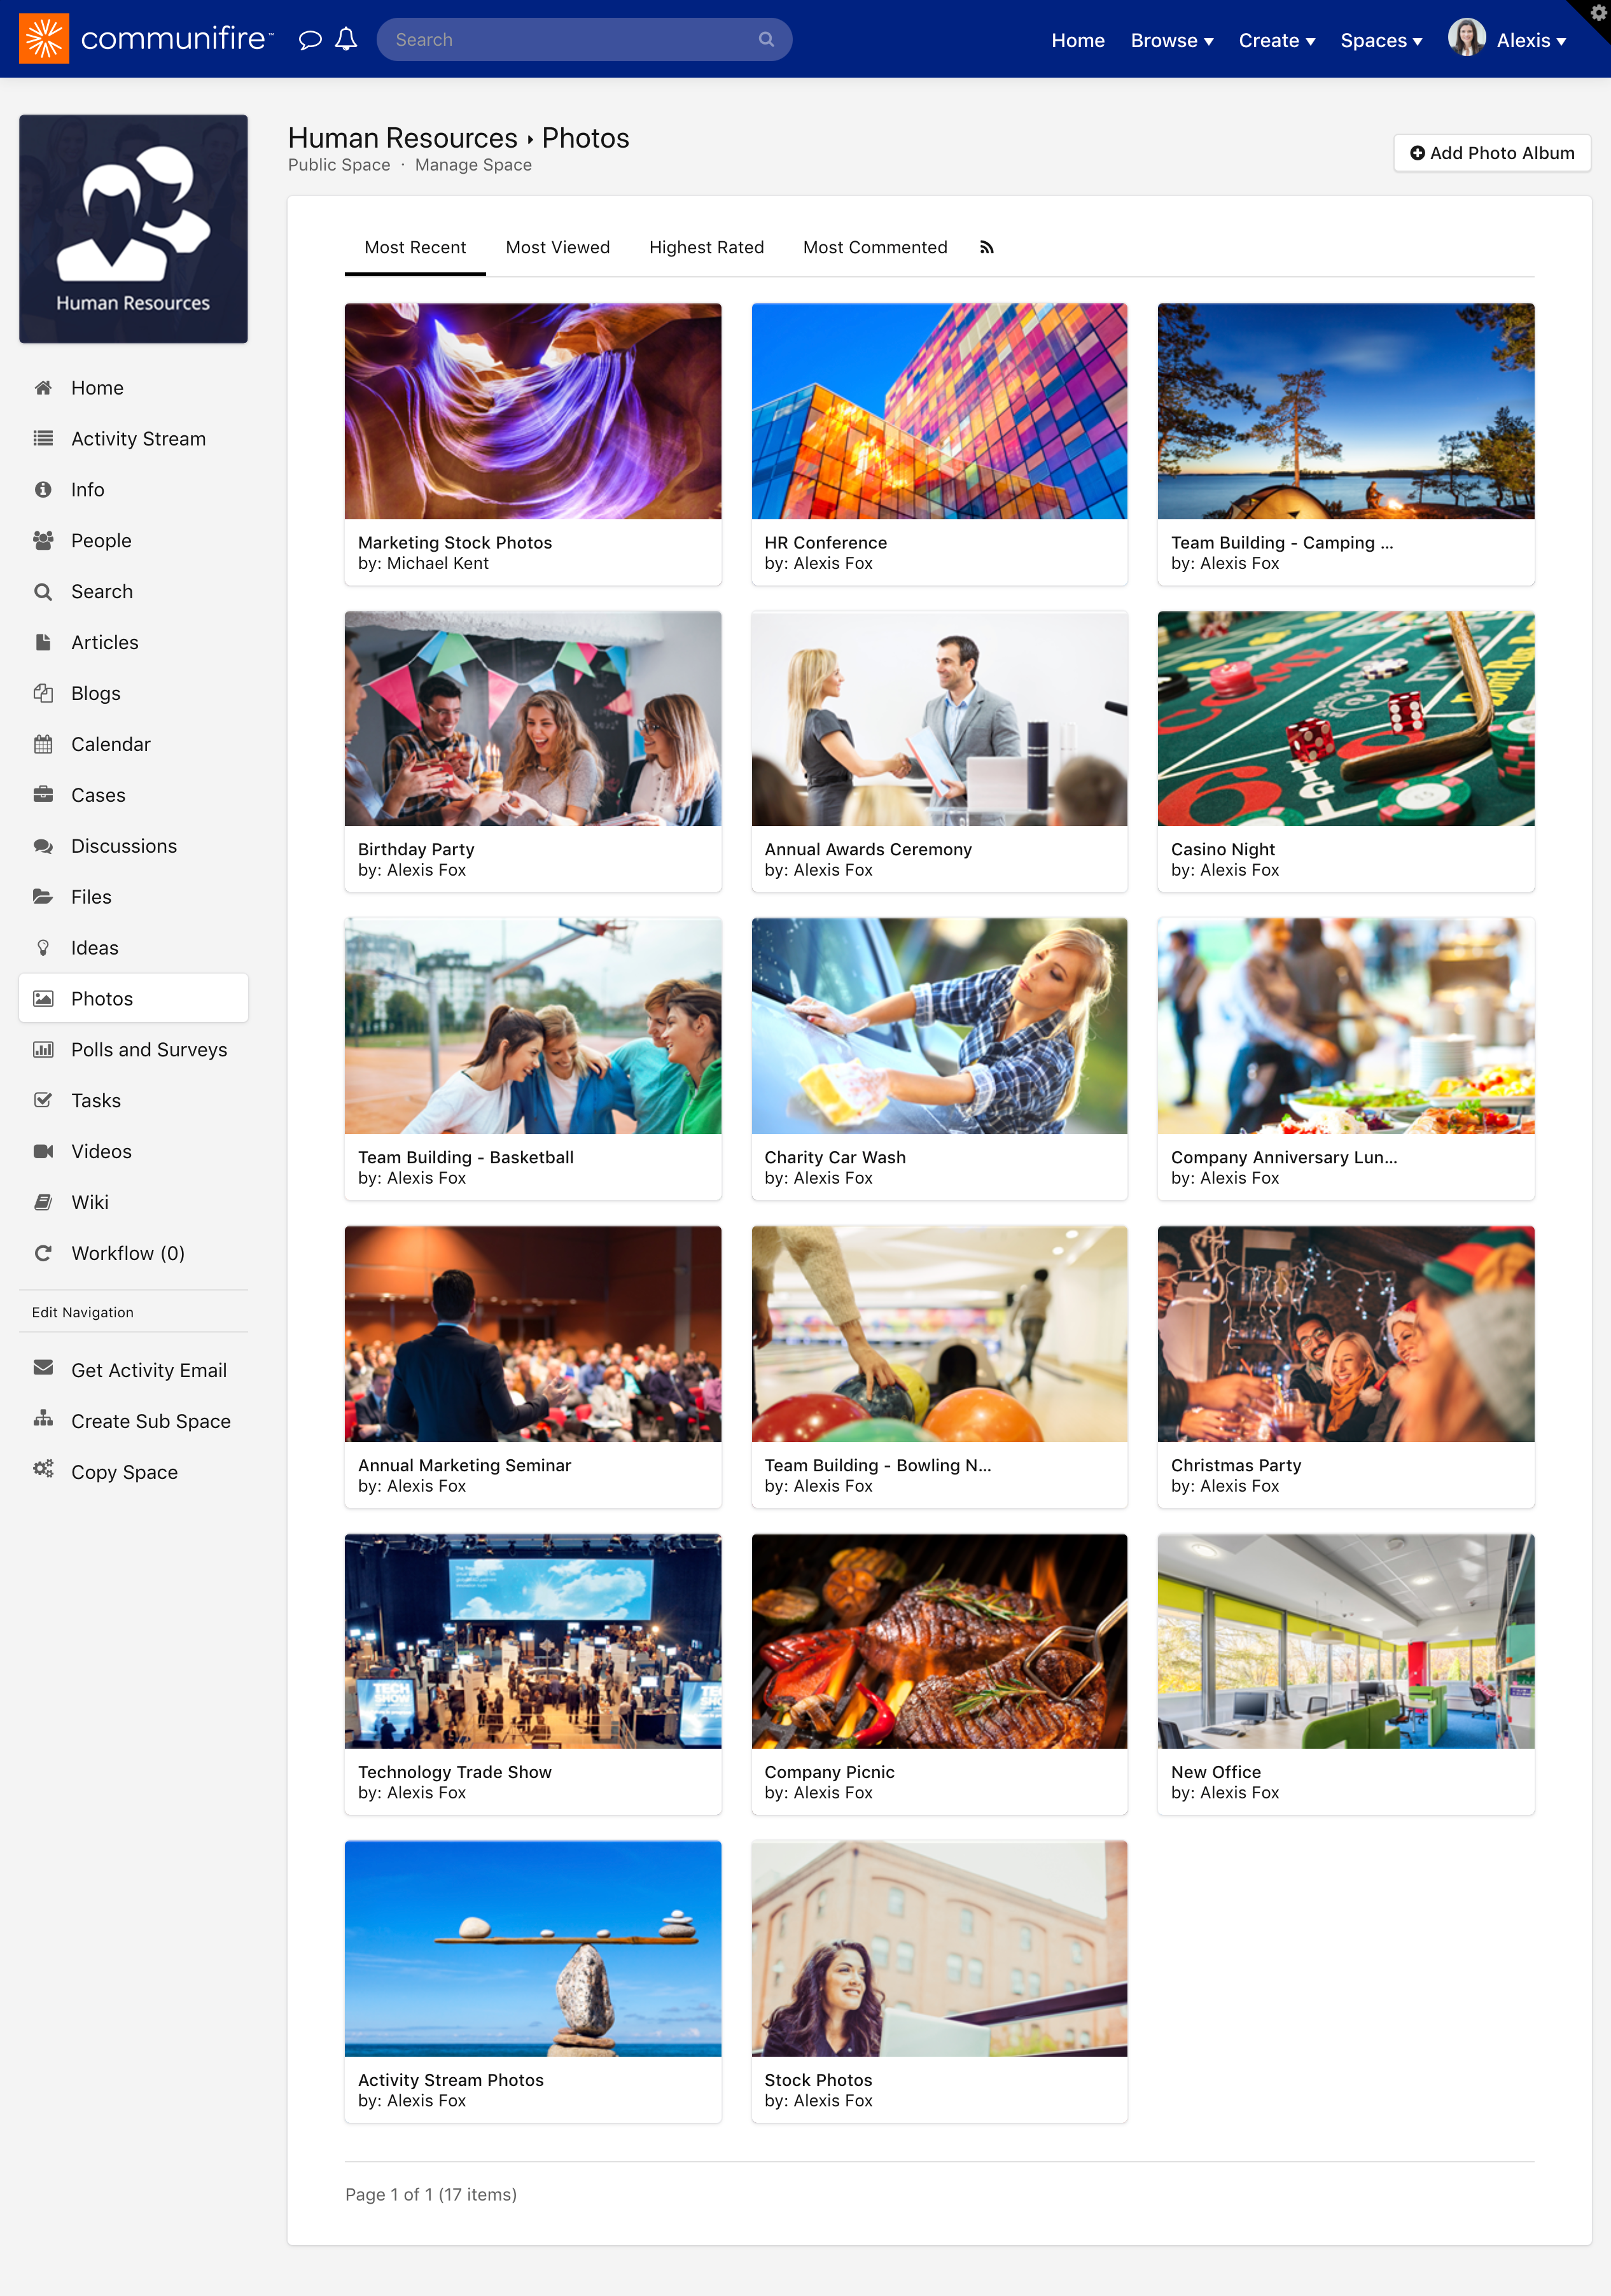 The Photos homepage